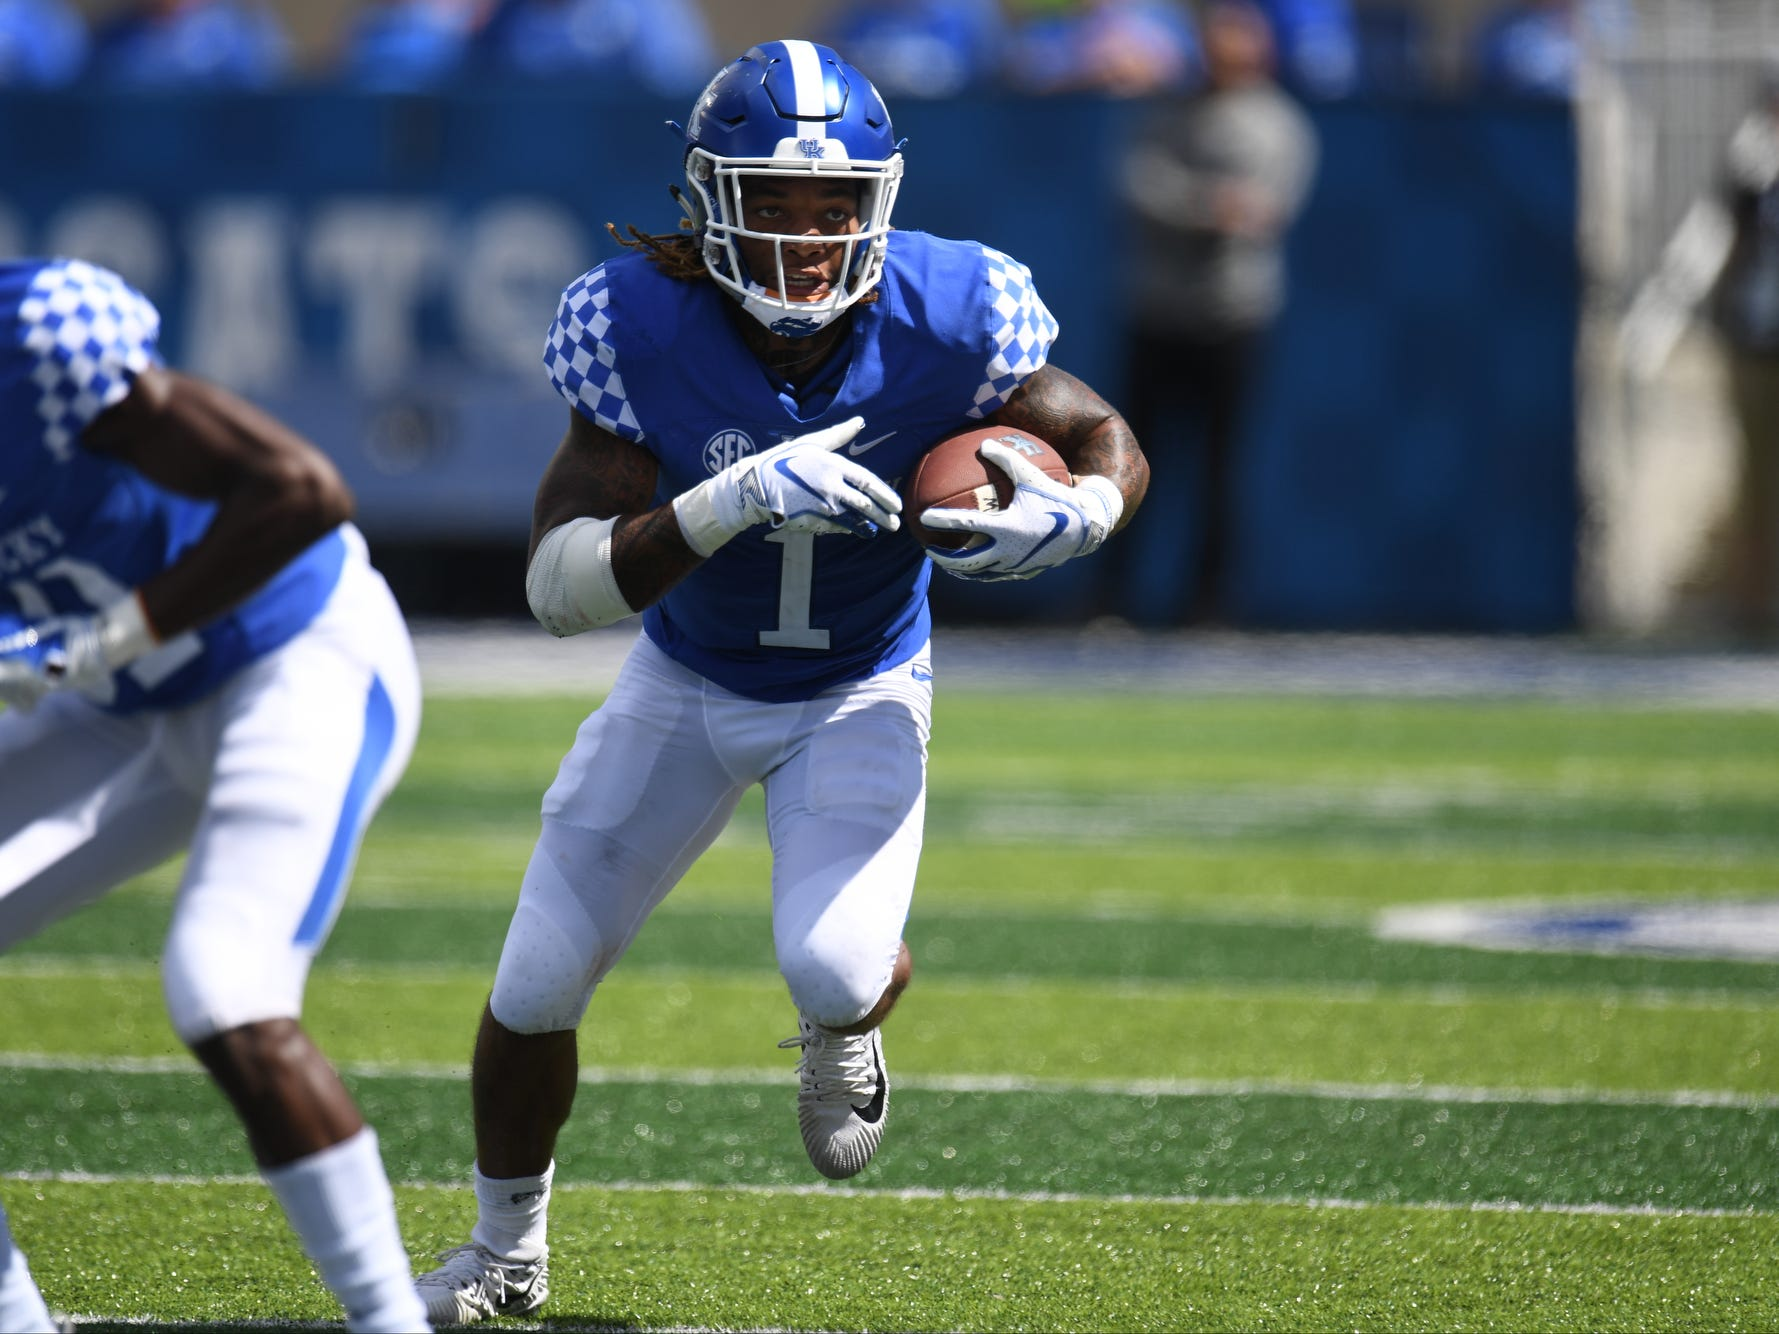 Kentucky wide receiver Lynn Bowden Jr. runs with the ball during the University of Kentucky football game against Murray State at Kroger Field in Lexington, Kentucky, on Saturday, Sept. 15, 2018.